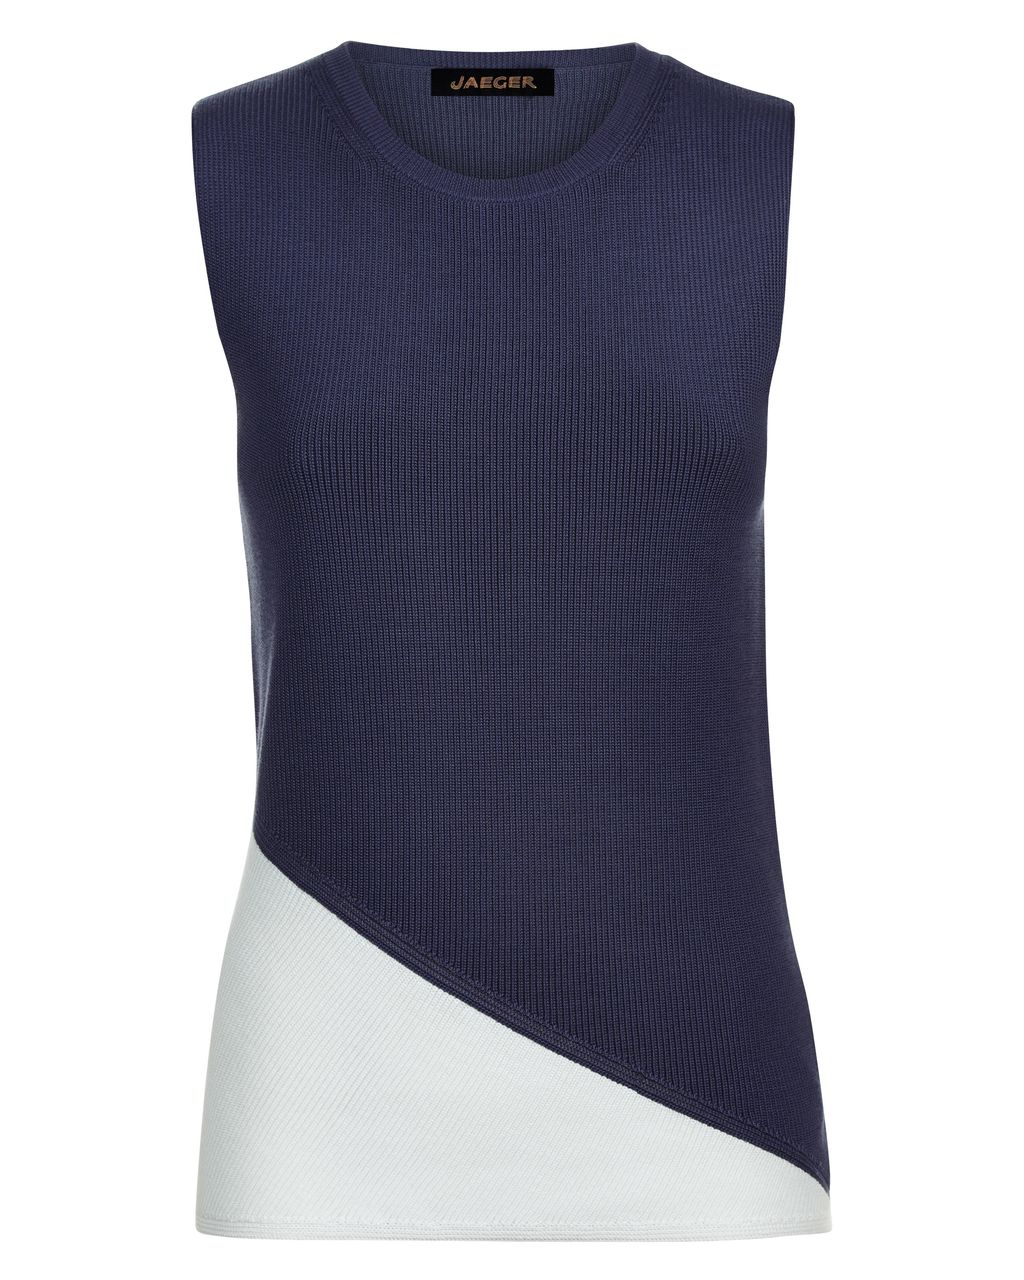 Cotton Colour Block Ribbed Top, White - neckline: round neck; sleeve style: sleeveless; style: vest top; secondary colour: white; predominant colour: navy; occasions: casual; length: standard; fibres: cotton - 100%; fit: body skimming; sleeve length: sleeveless; pattern type: fabric; pattern: colourblock; texture group: jersey - stretchy/drapey; multicoloured: multicoloured; season: s/s 2016; wardrobe: highlight